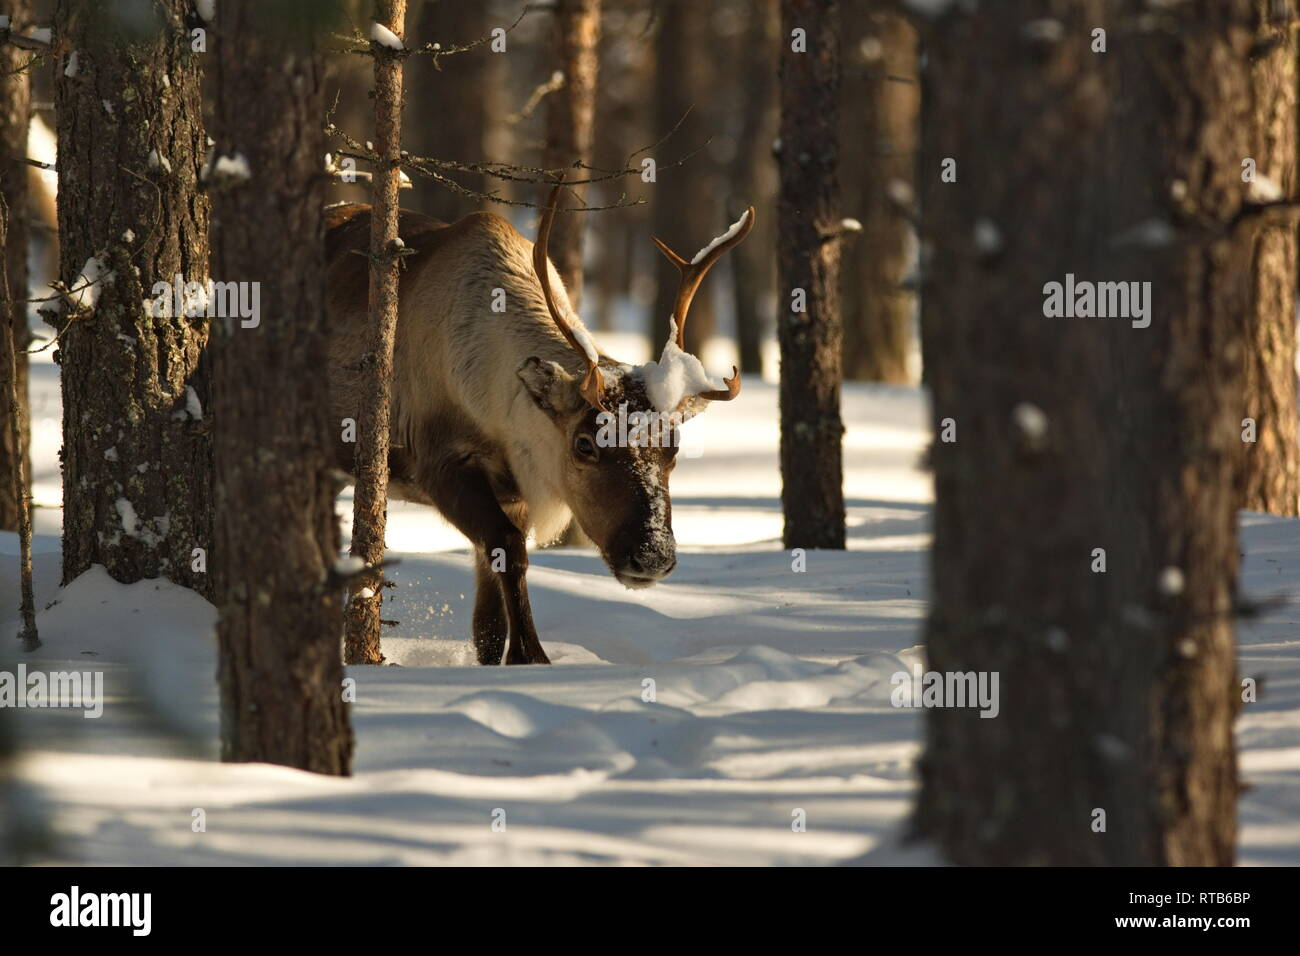 Reindeer (Rangifer tarandus) in a snowy winter forest Stock Photo